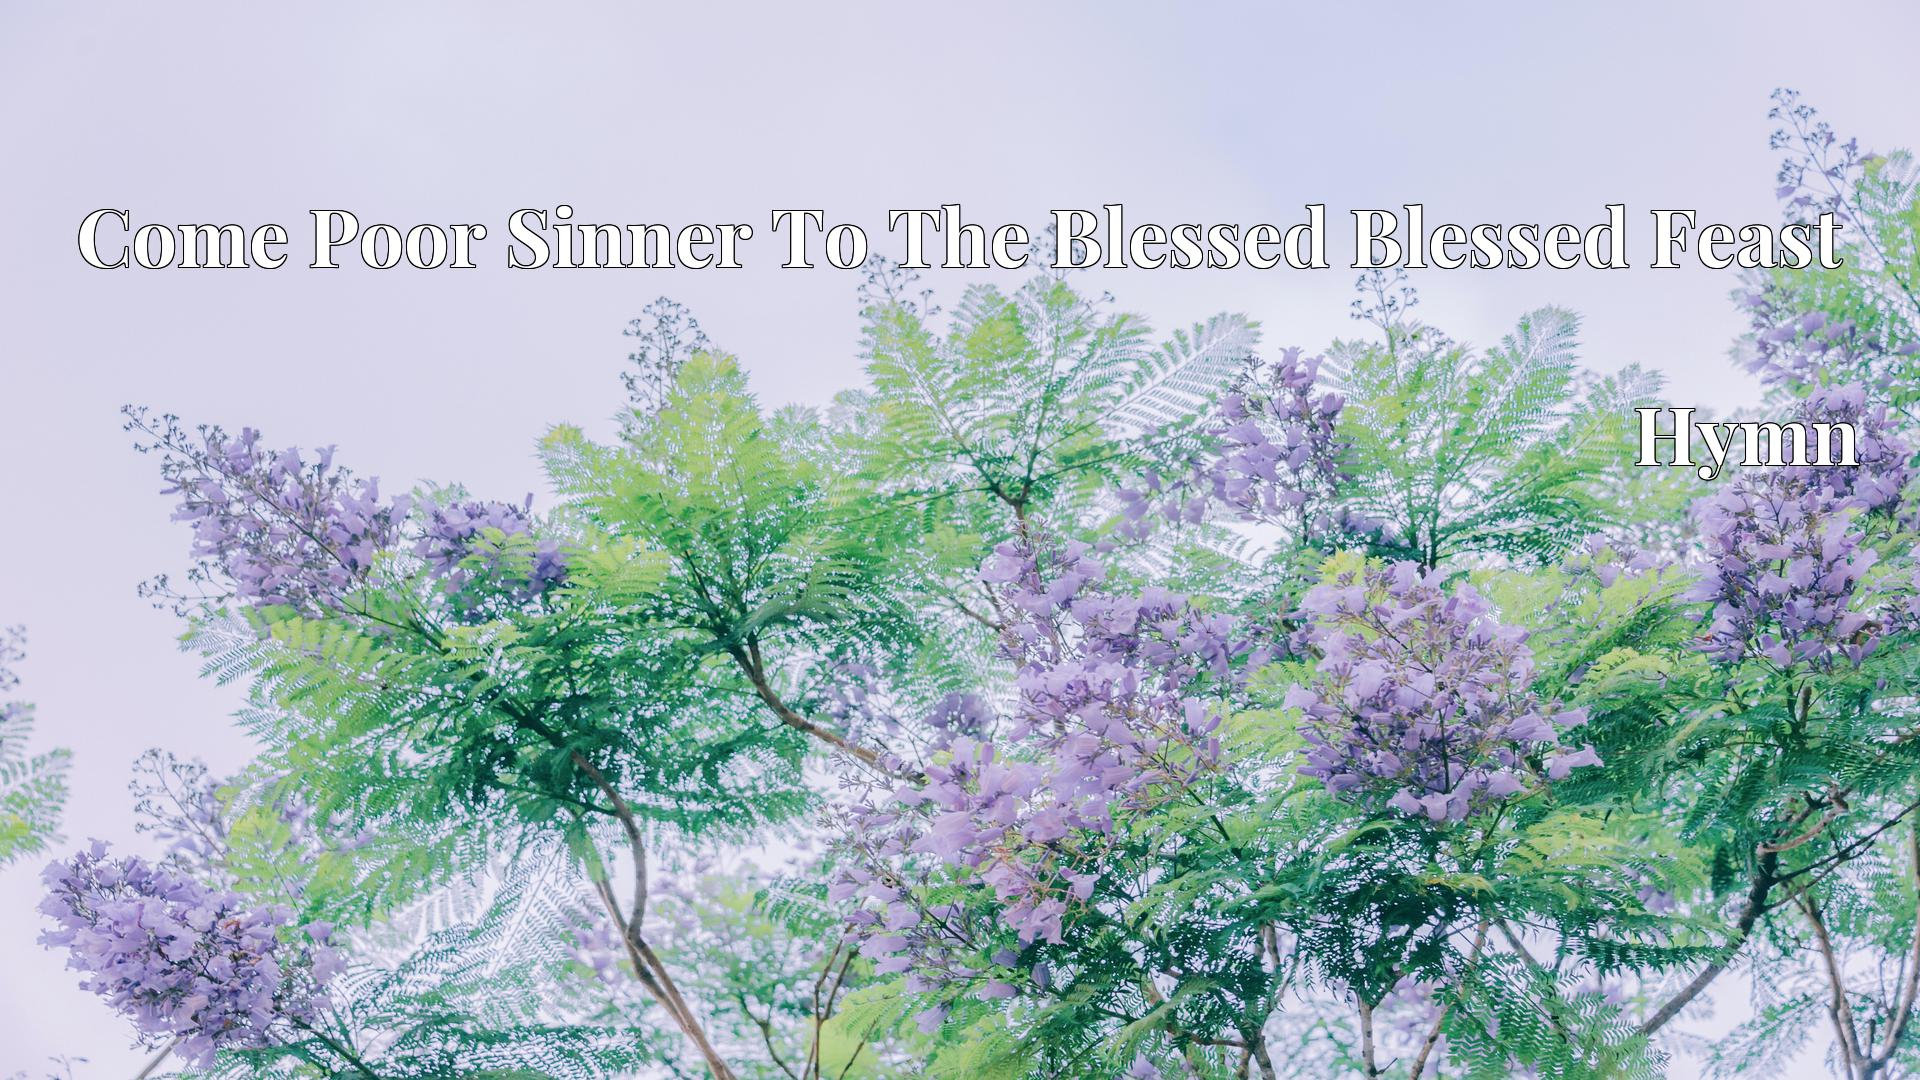 Come Poor Sinner To The Blessed Blessed Feast - Hymn